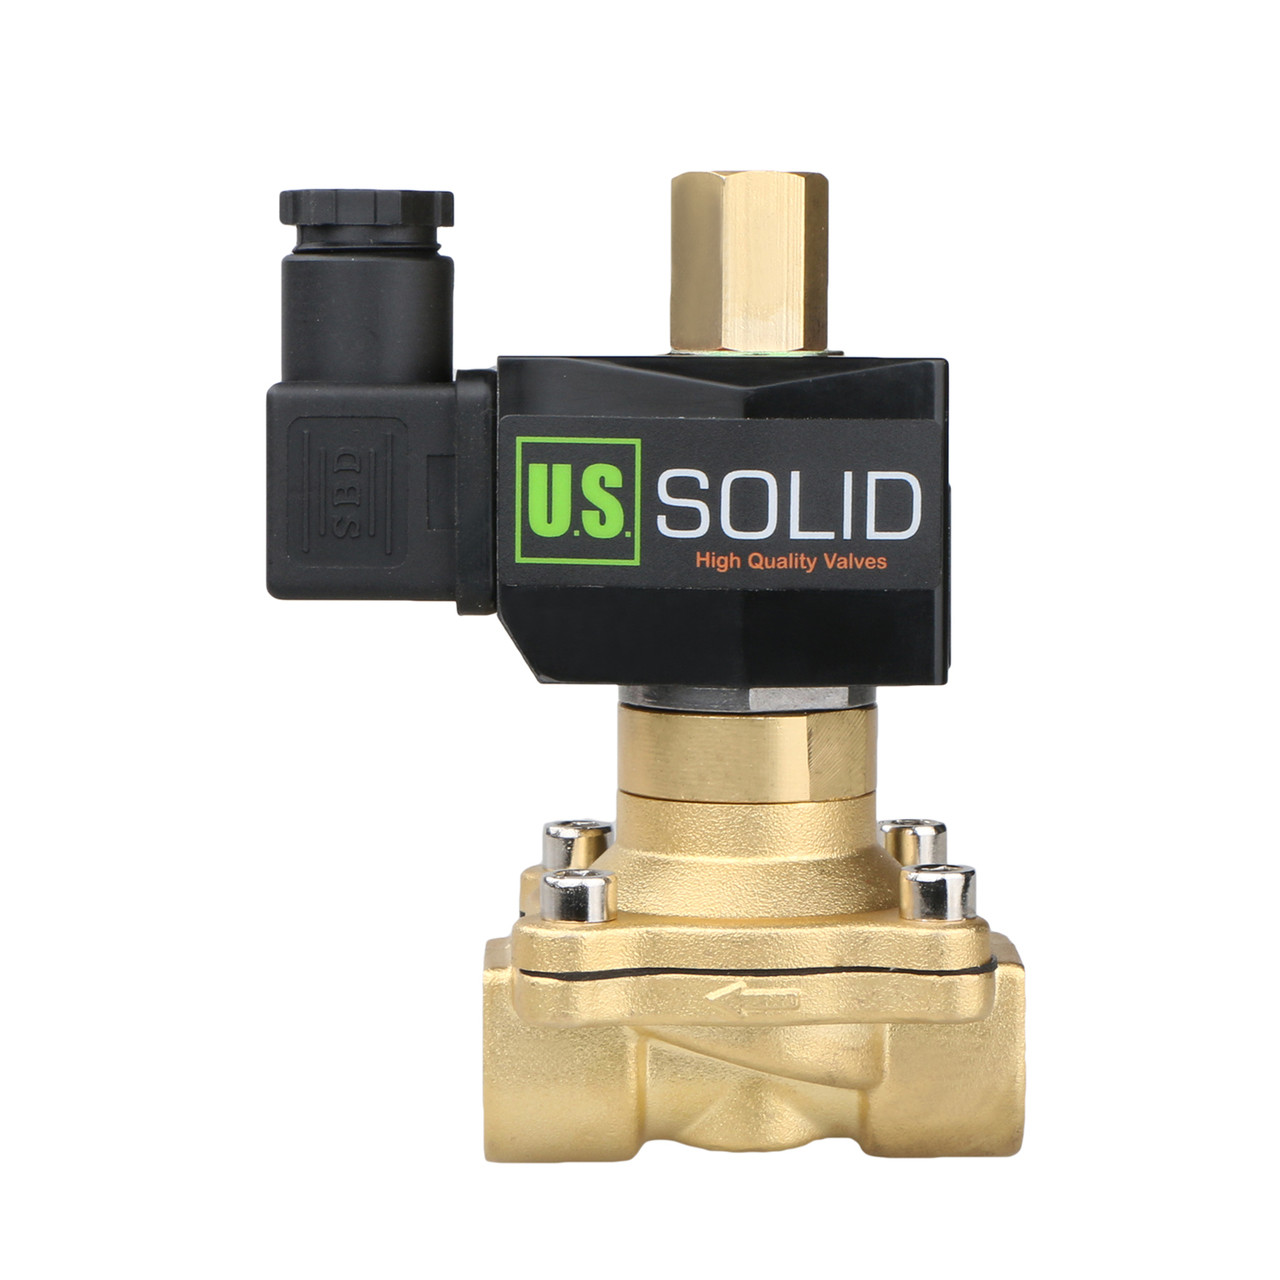 "U.S. Solid Electric Solenoid Valve- 1/2"" 24V AC Solenoid Valve Brass Body Normally Open, NBR SEAL"